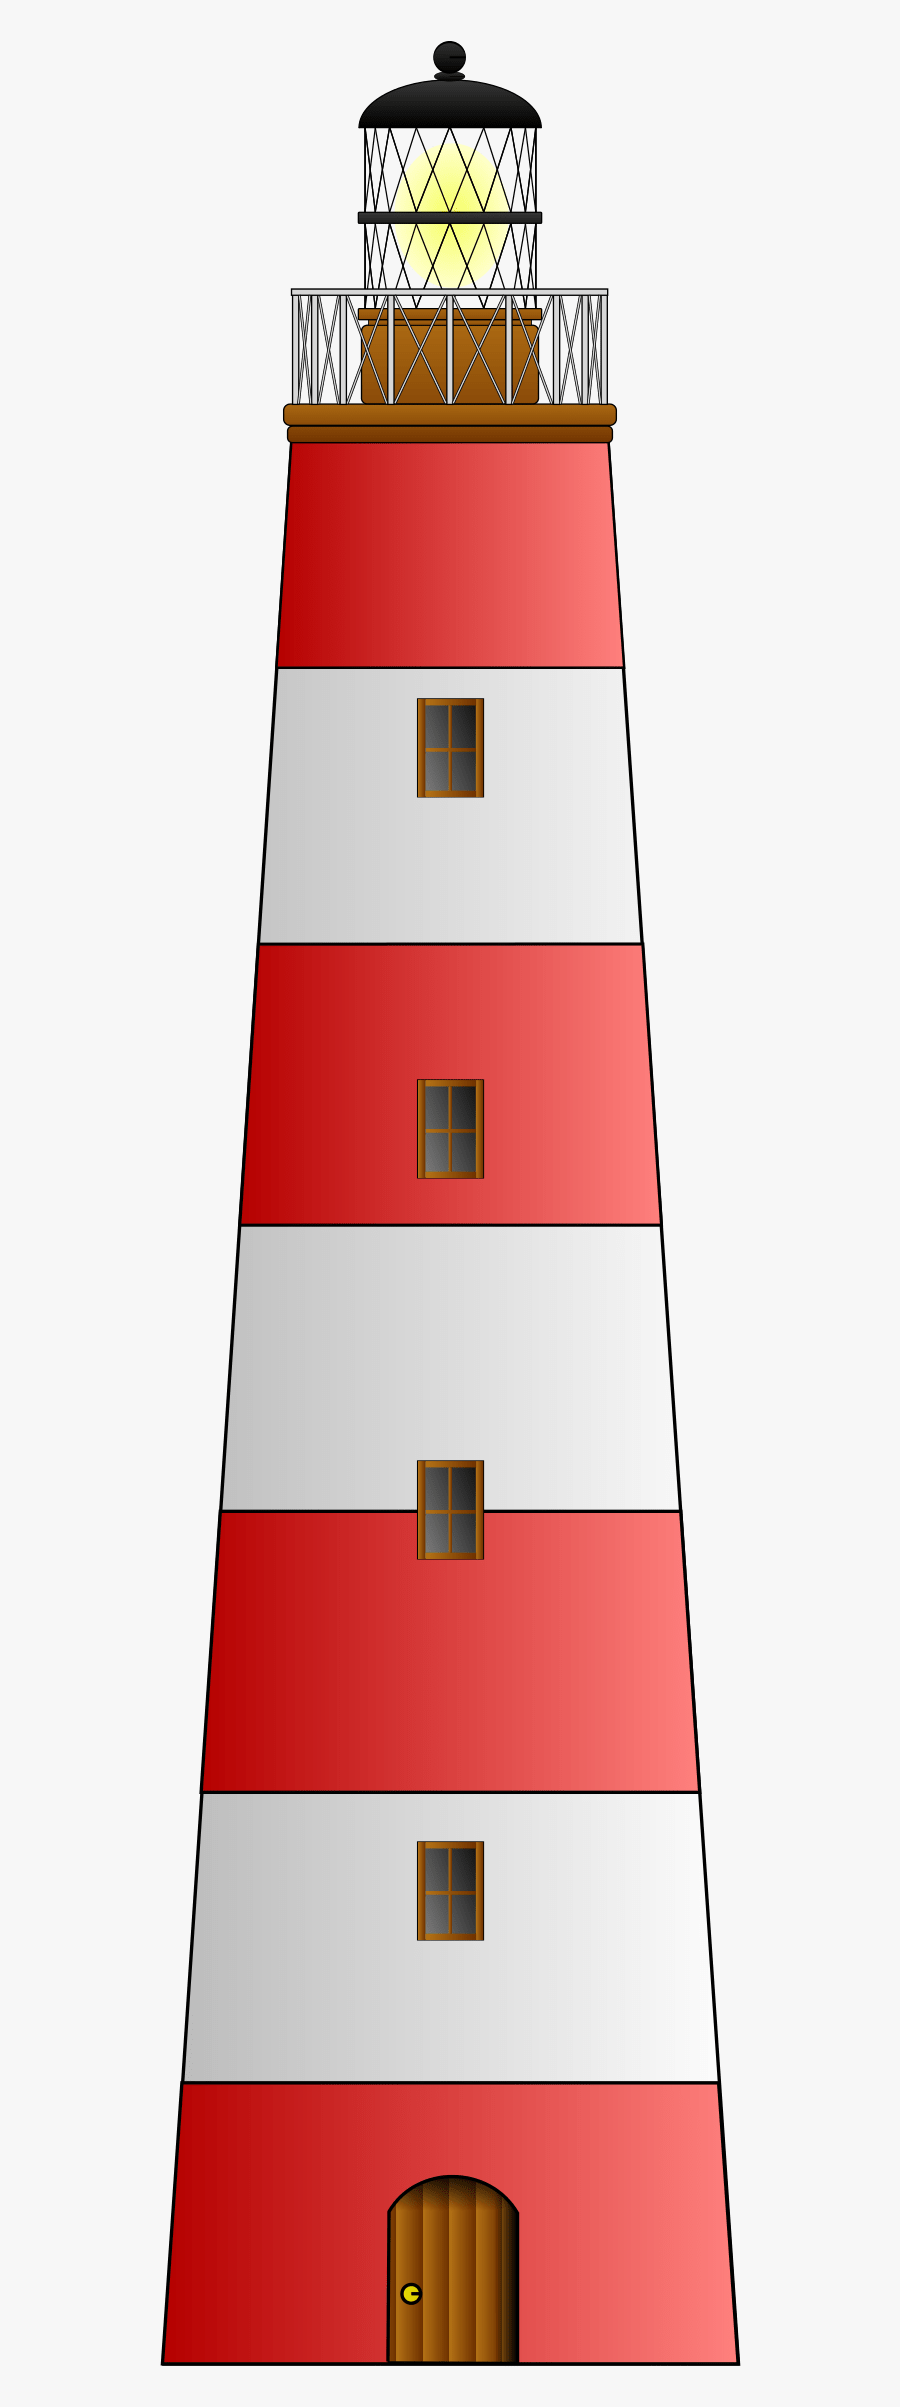 Red White Lighthouse Clipart - Lighthouse Clipart, Transparent Clipart